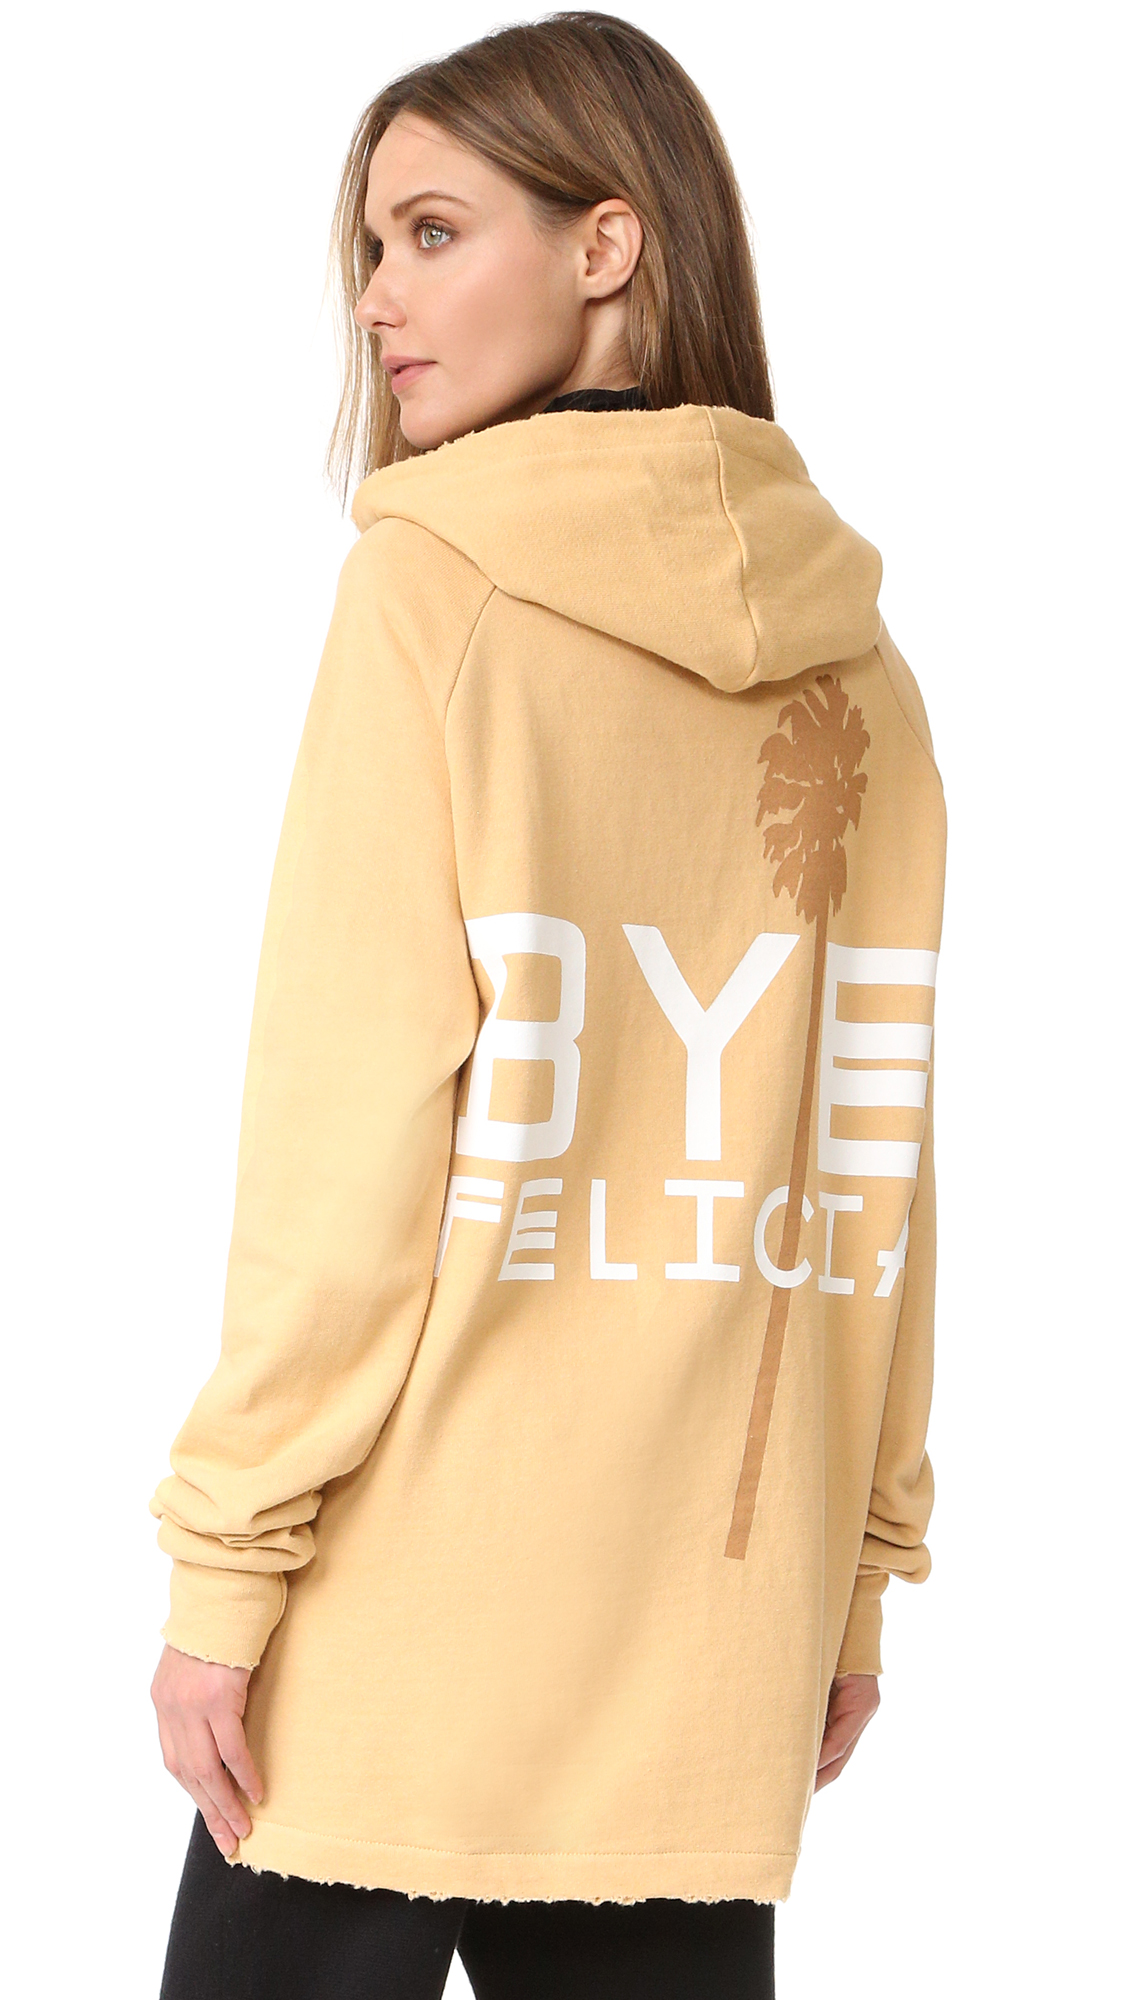 A bold 'Bye Felicia' graphic accents the back of this Baja East hoodie. Worn edges and a split, uneven hem create an undone, relaxed look. Zip half placket. Pouch pocket. Long sleeves. Fabric: French terry. 100% supima